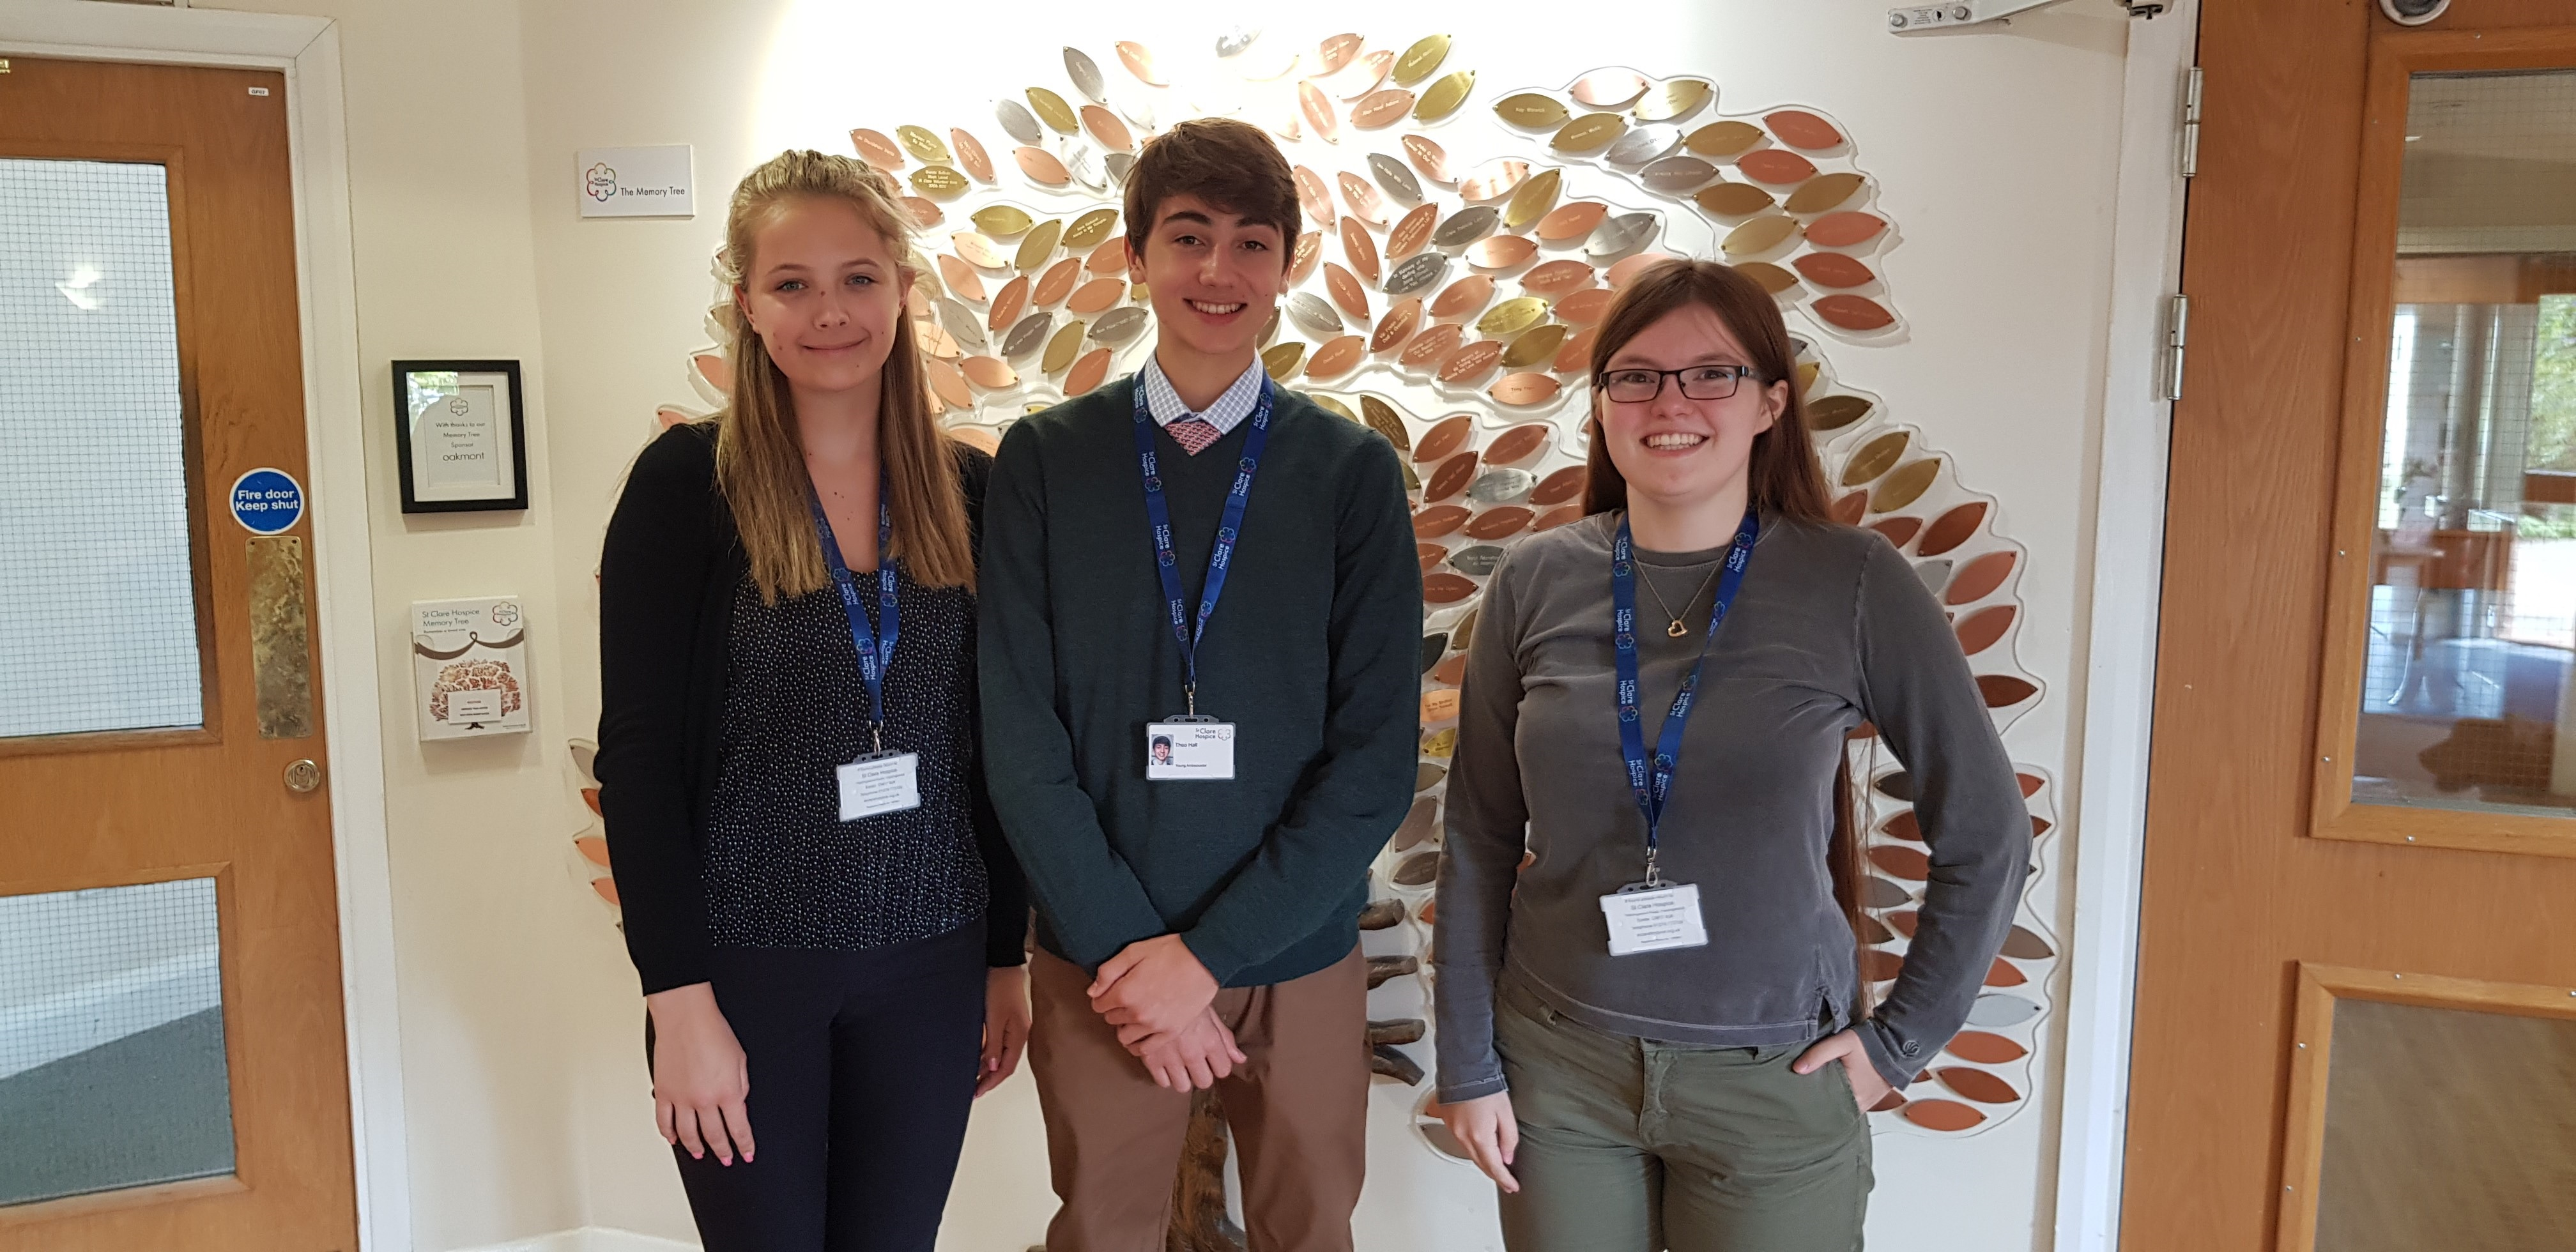 Hospice welcomes new Young Ambassadors